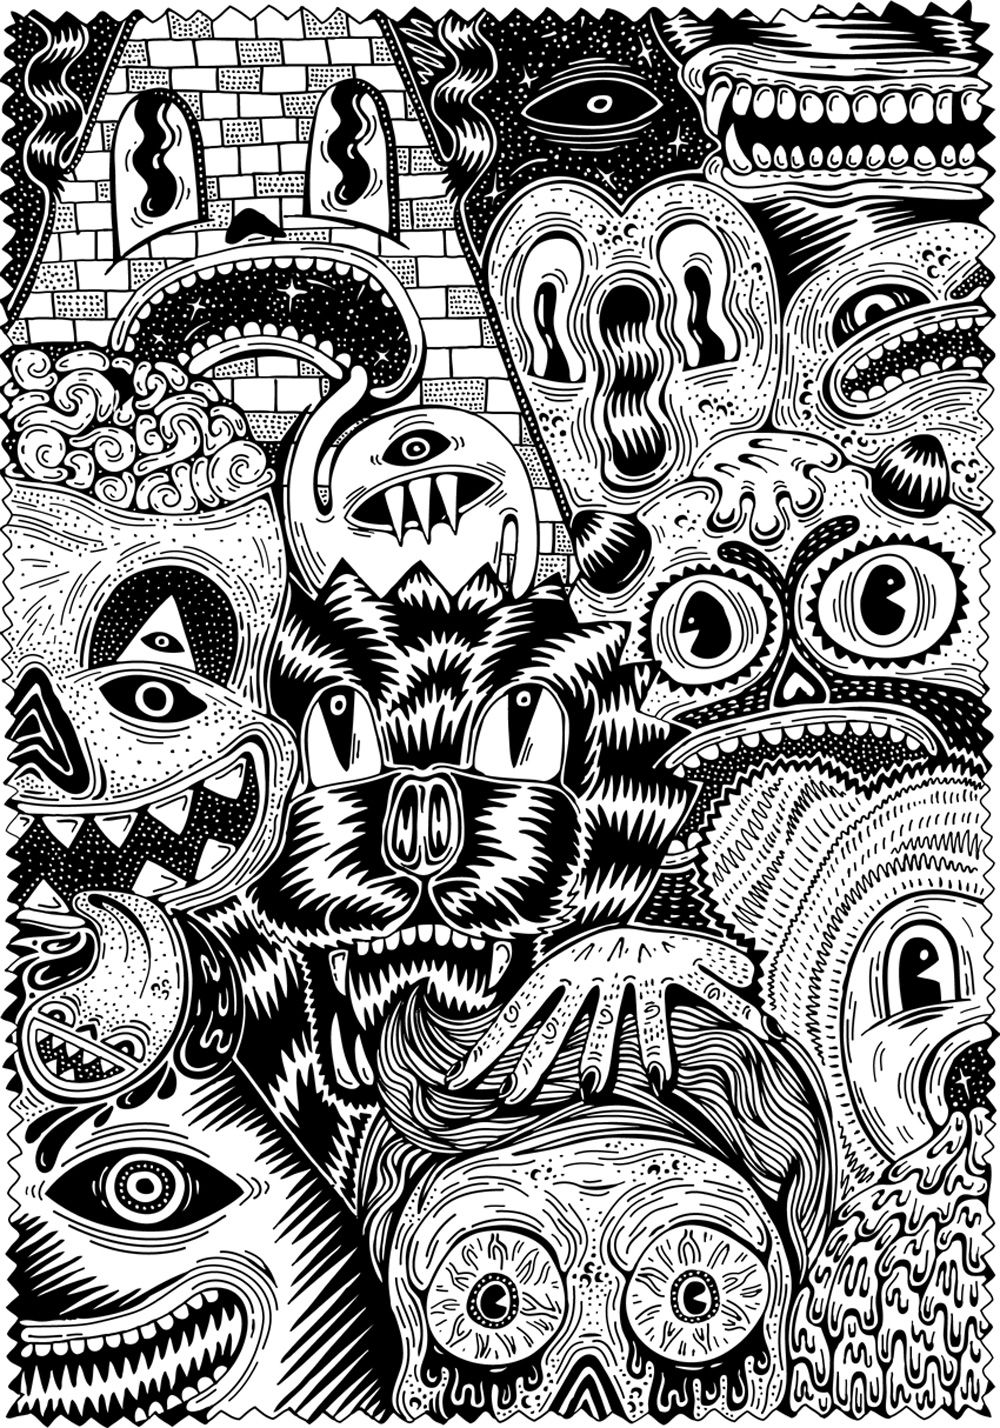 printable doodle art coloring pages 2013 at 1000 1428 in